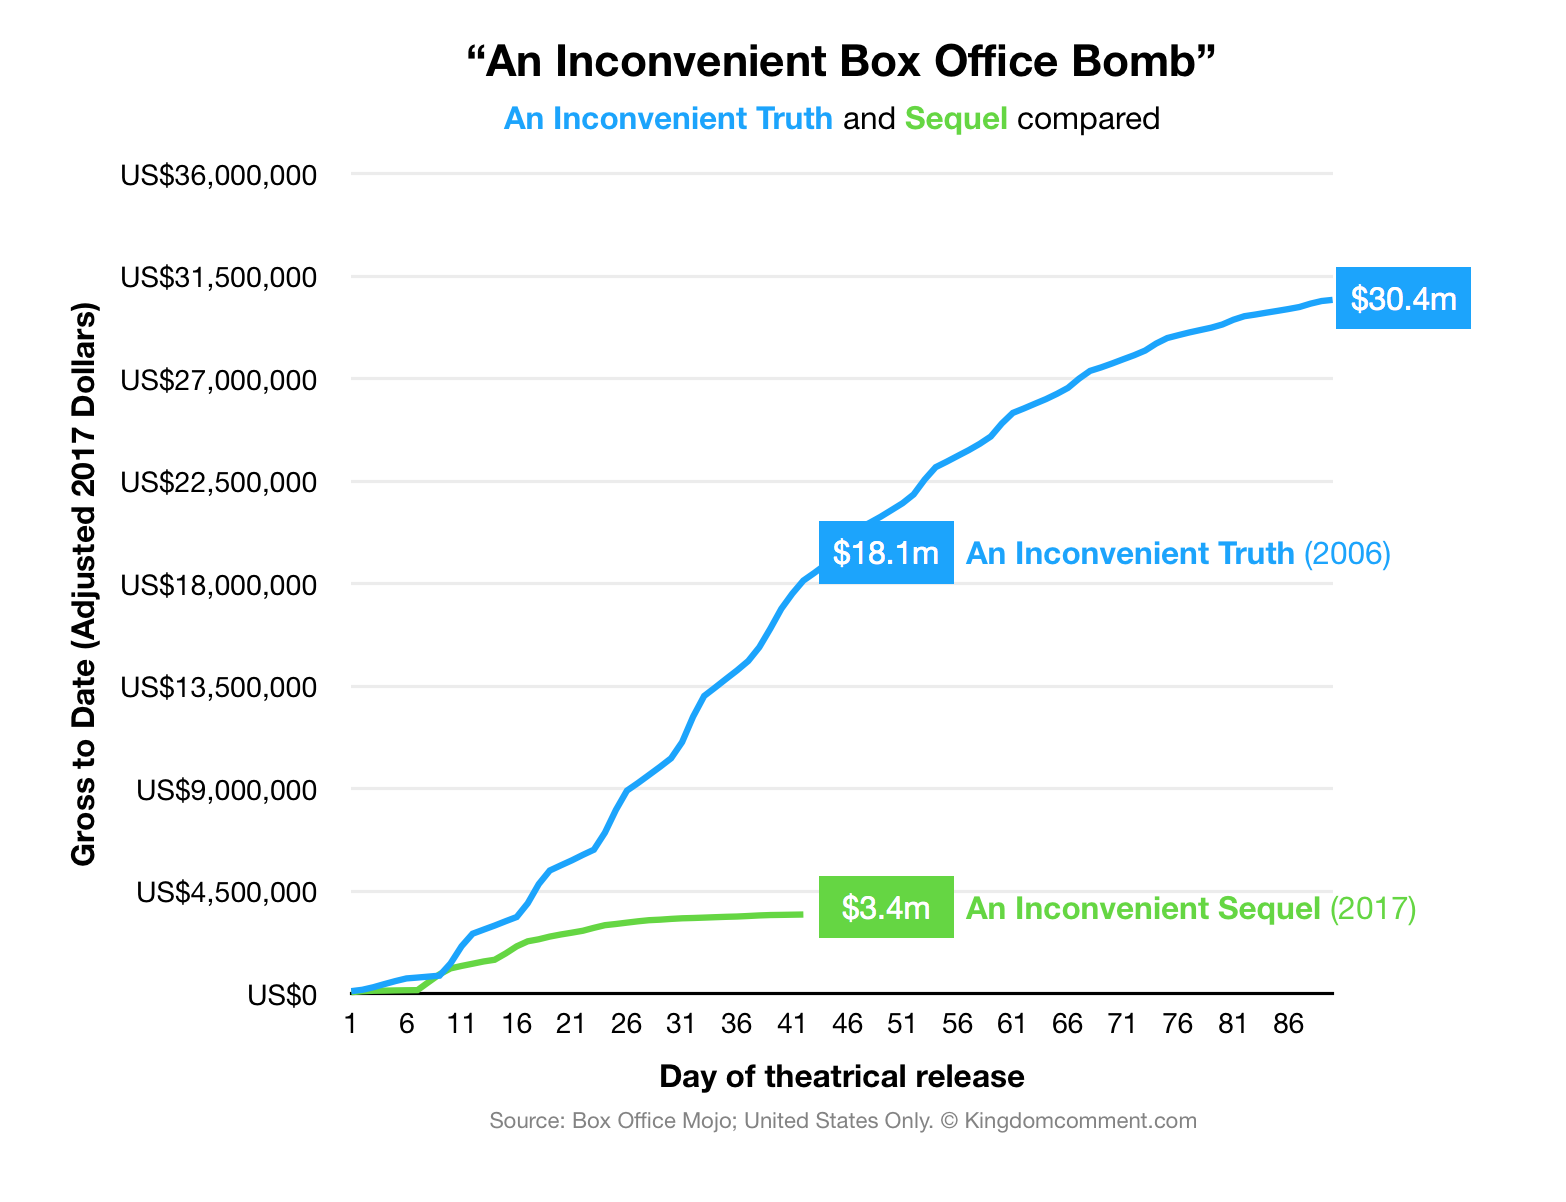 AnInconvenientBoxOfficeBomb.png